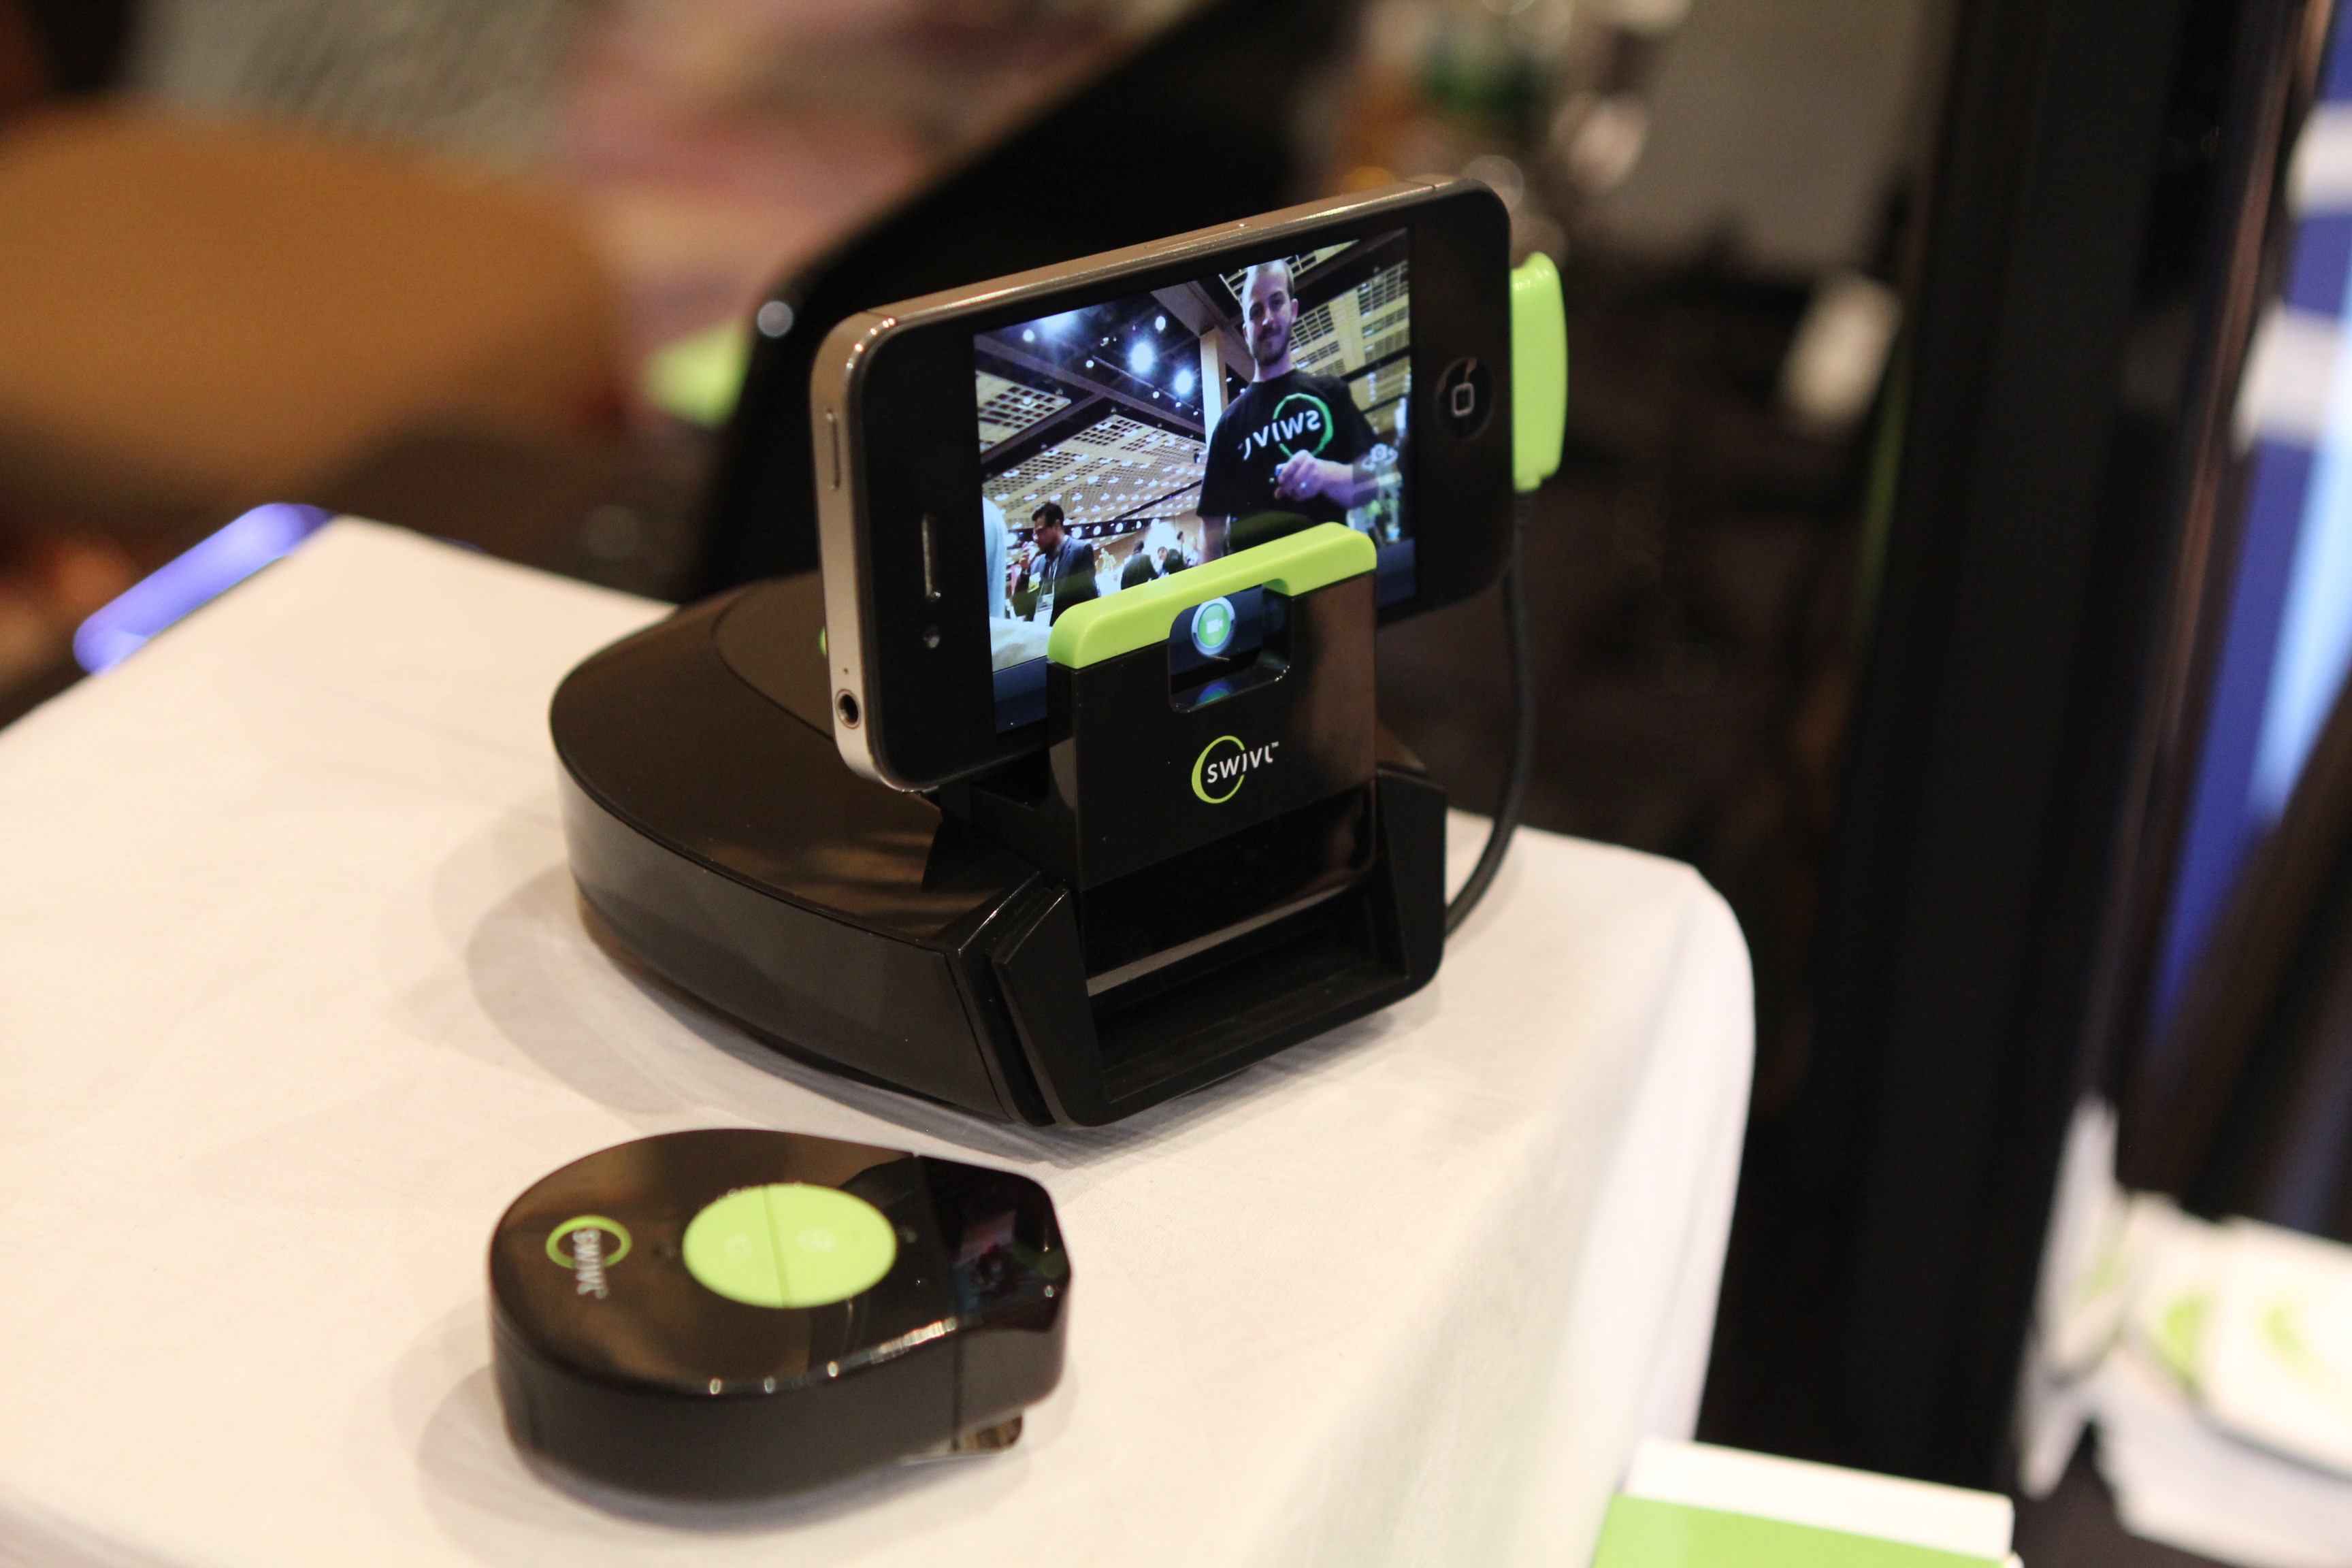 The Swivl auto-tracking camera mount for iPhone is here, and it sure is sweet [Video]